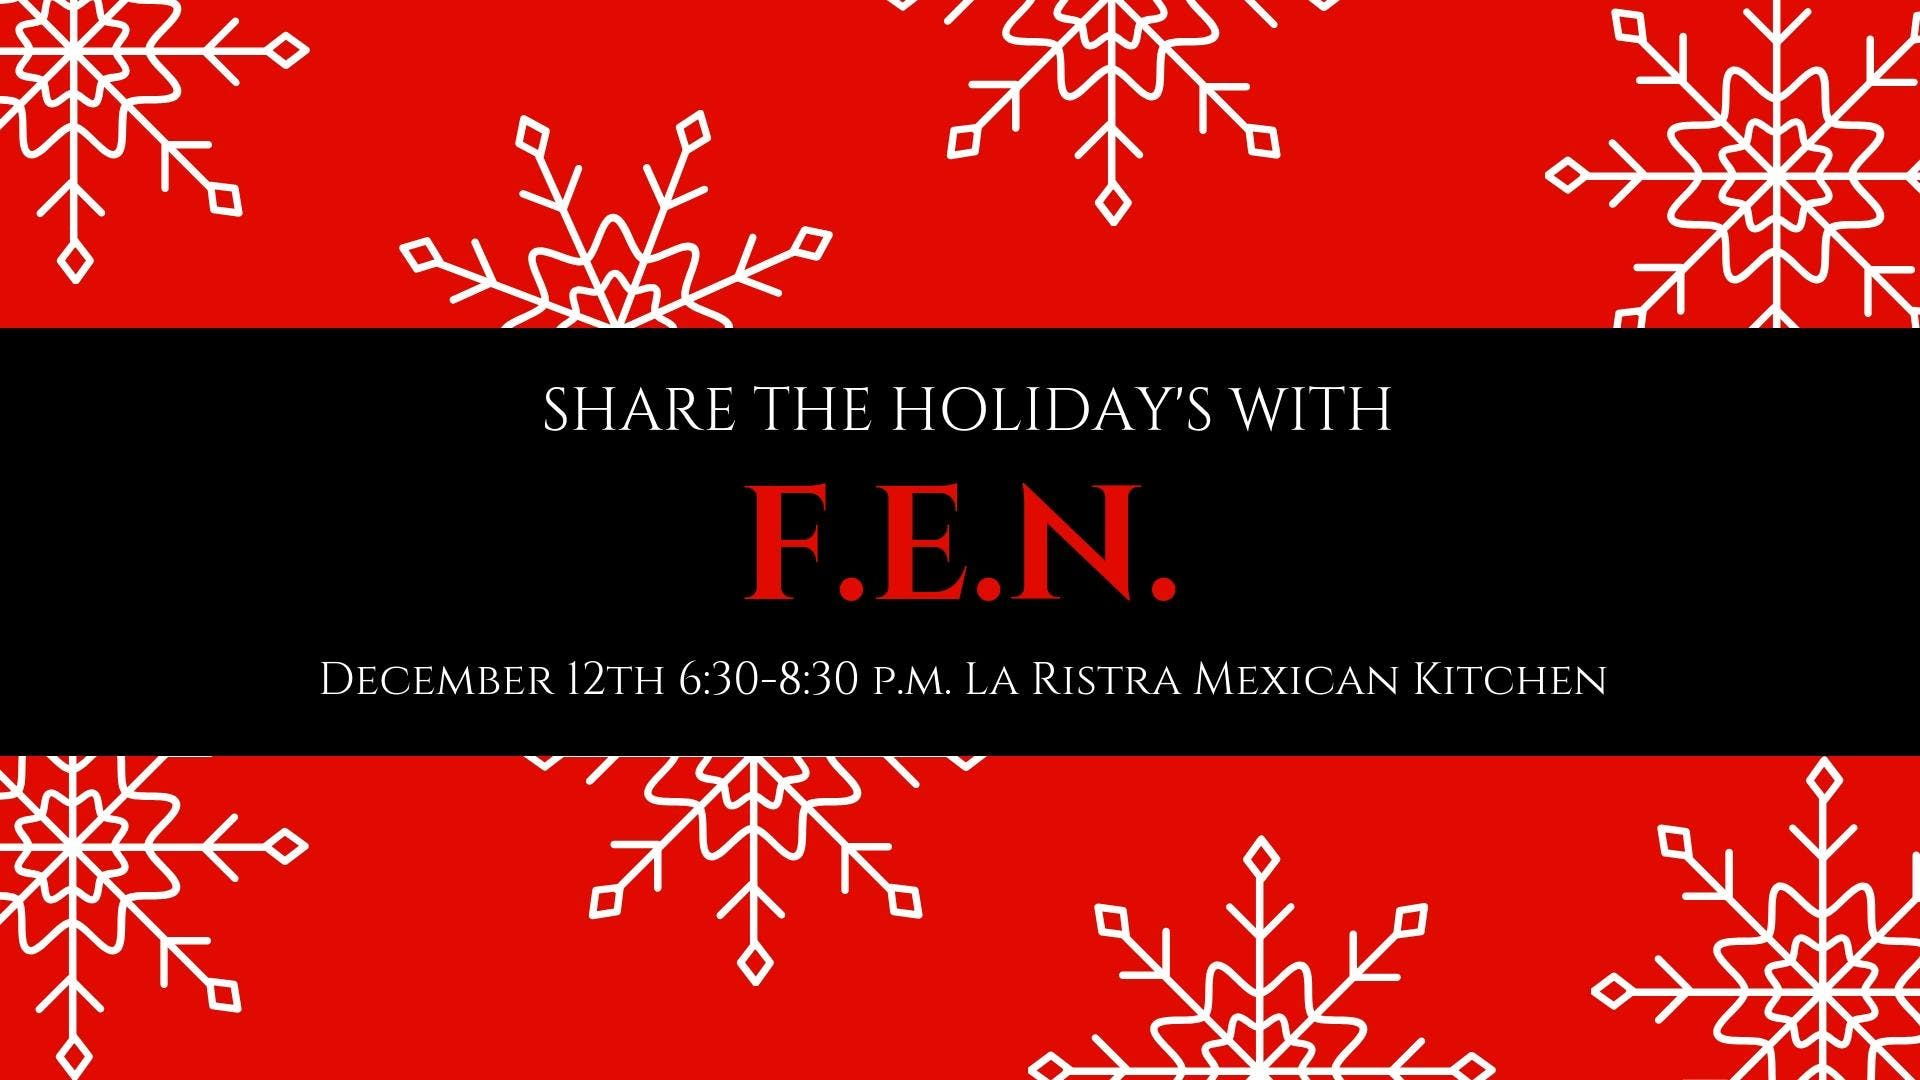 F.E.N. Holiday Party